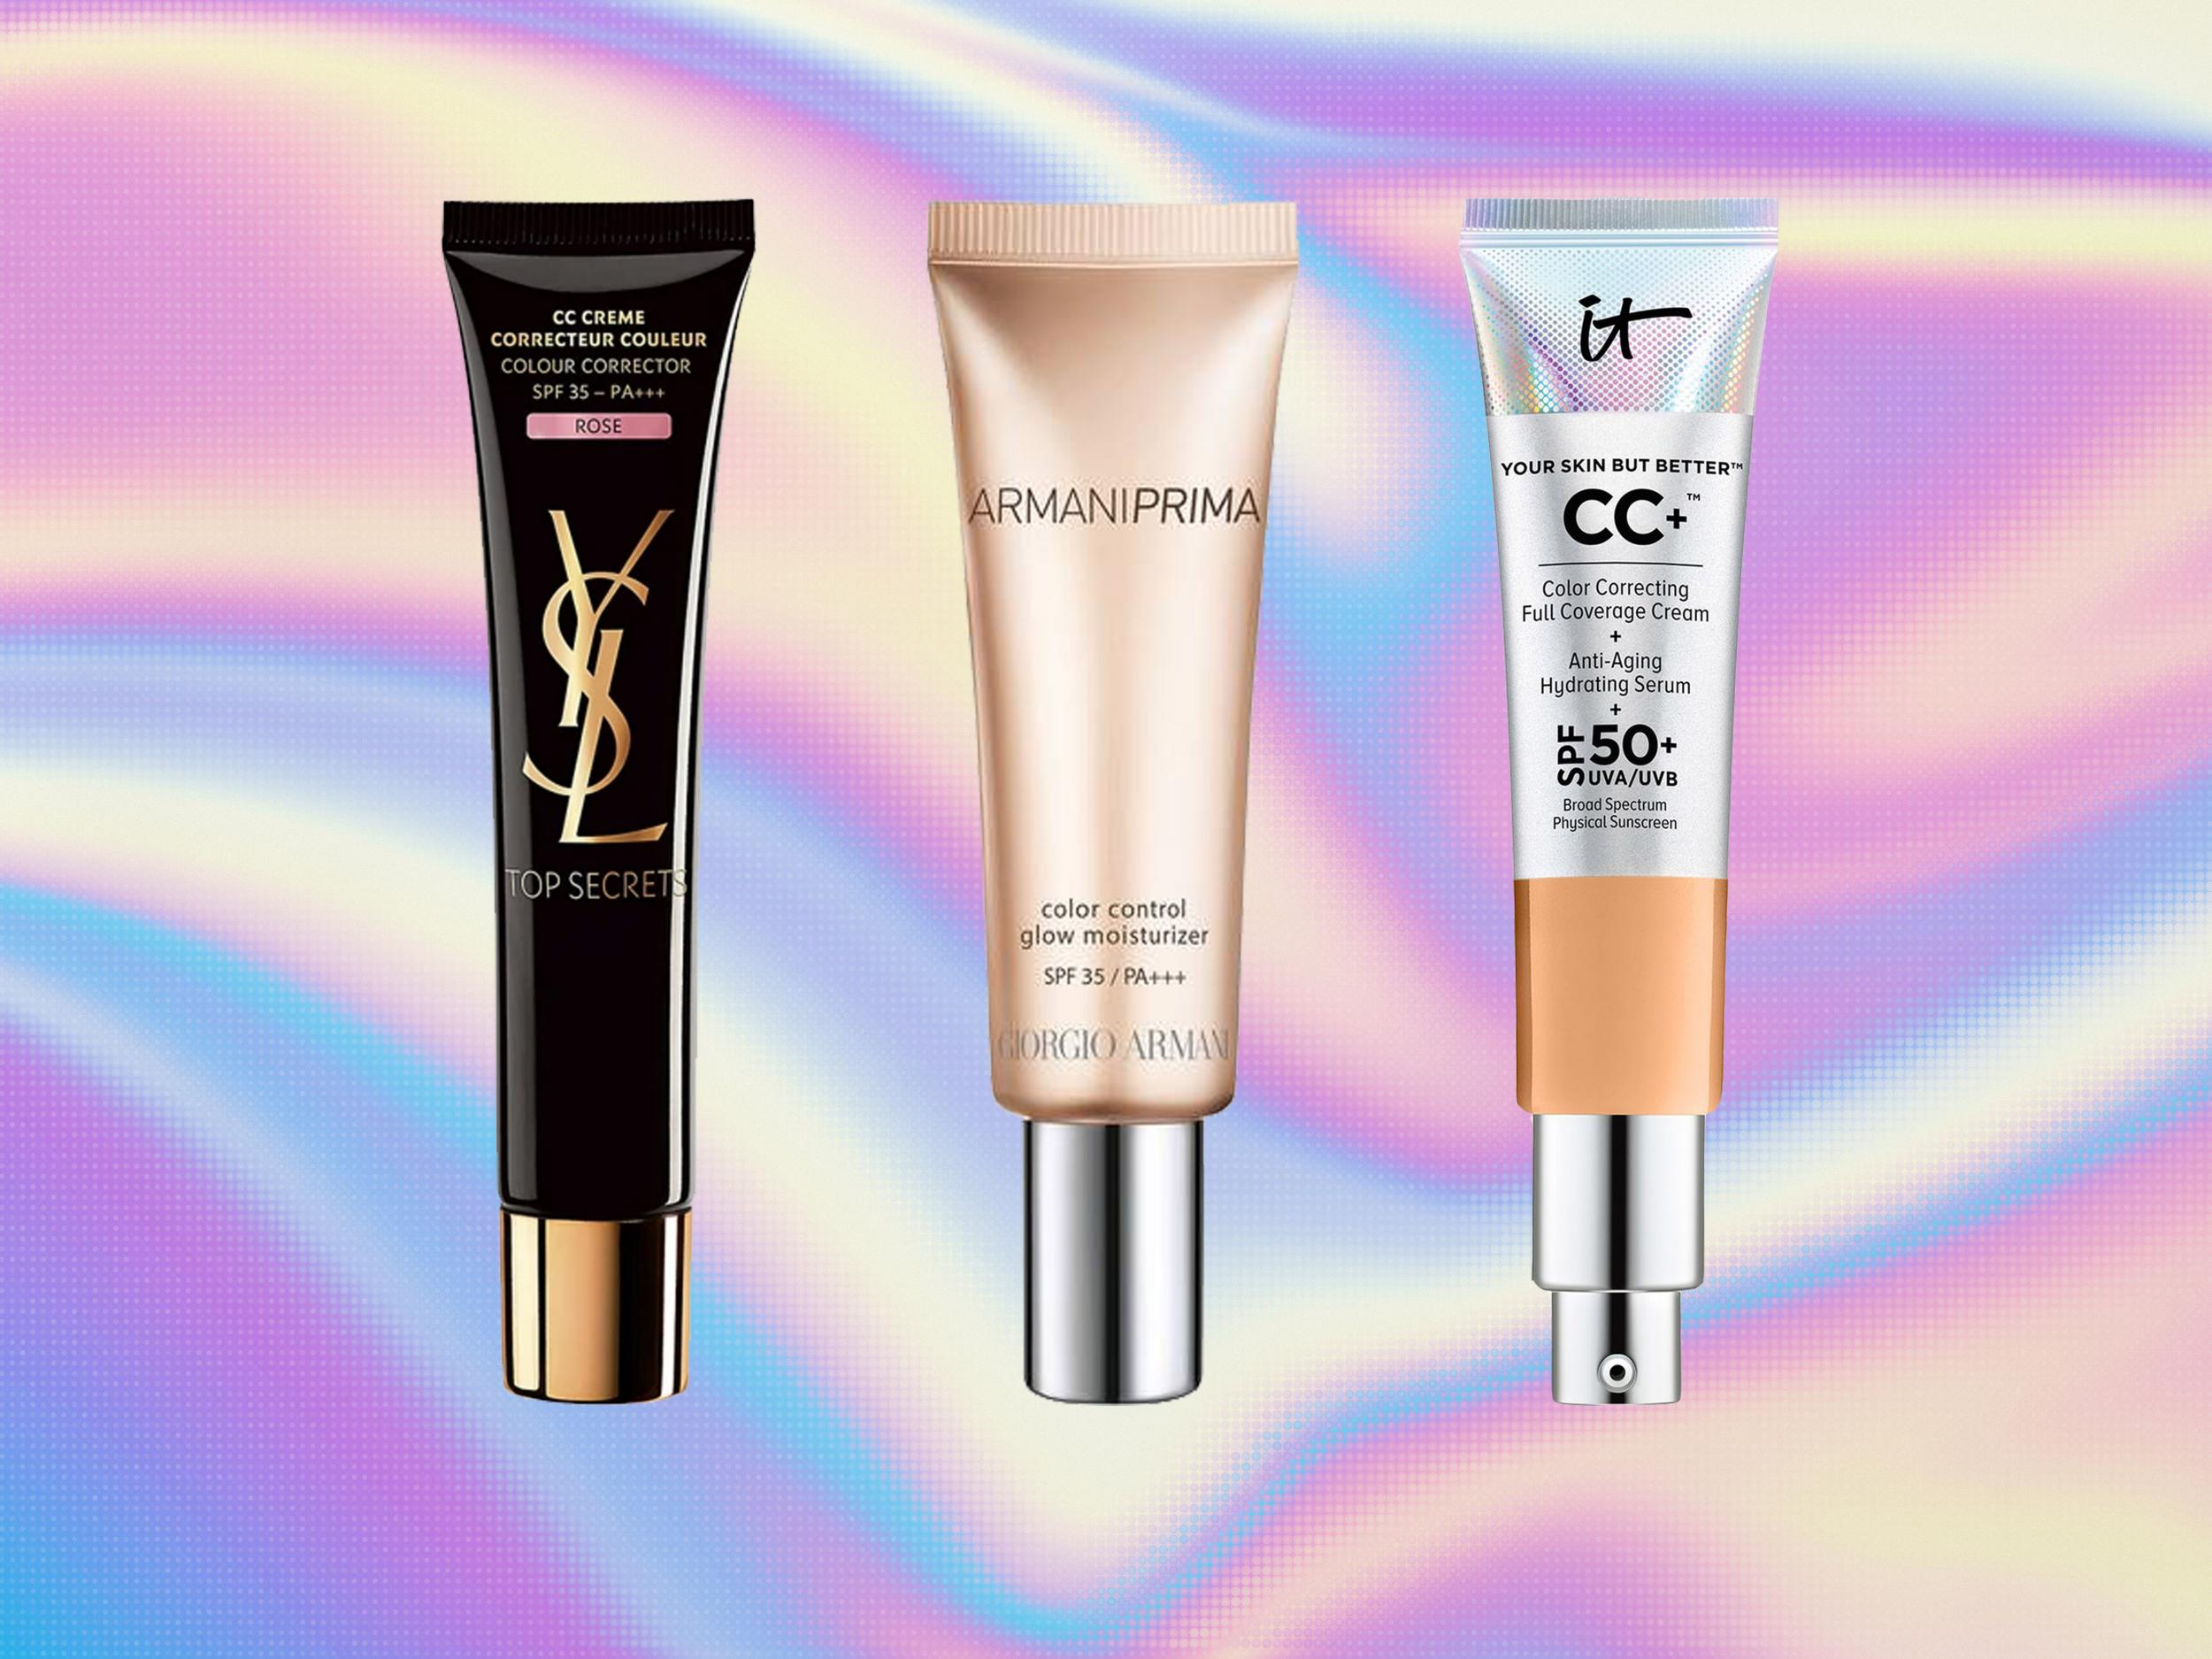 Best Cc Cream That Helps Conceal Colour Correct And Reduce